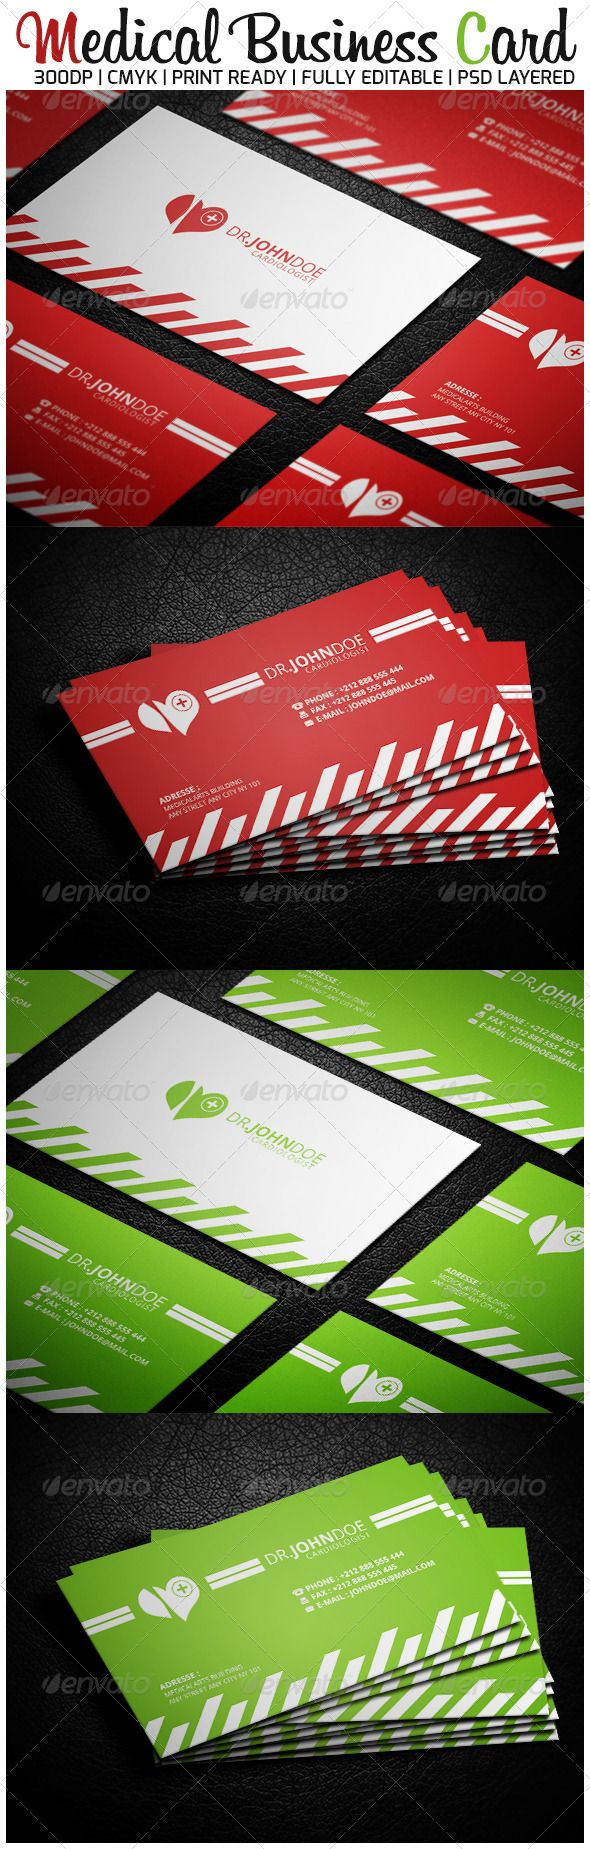 87 best print templates images on pinterest script fonts artist medical business card graphicriver specifications 300 dpi 352 375 magicingreecefo Choice Image